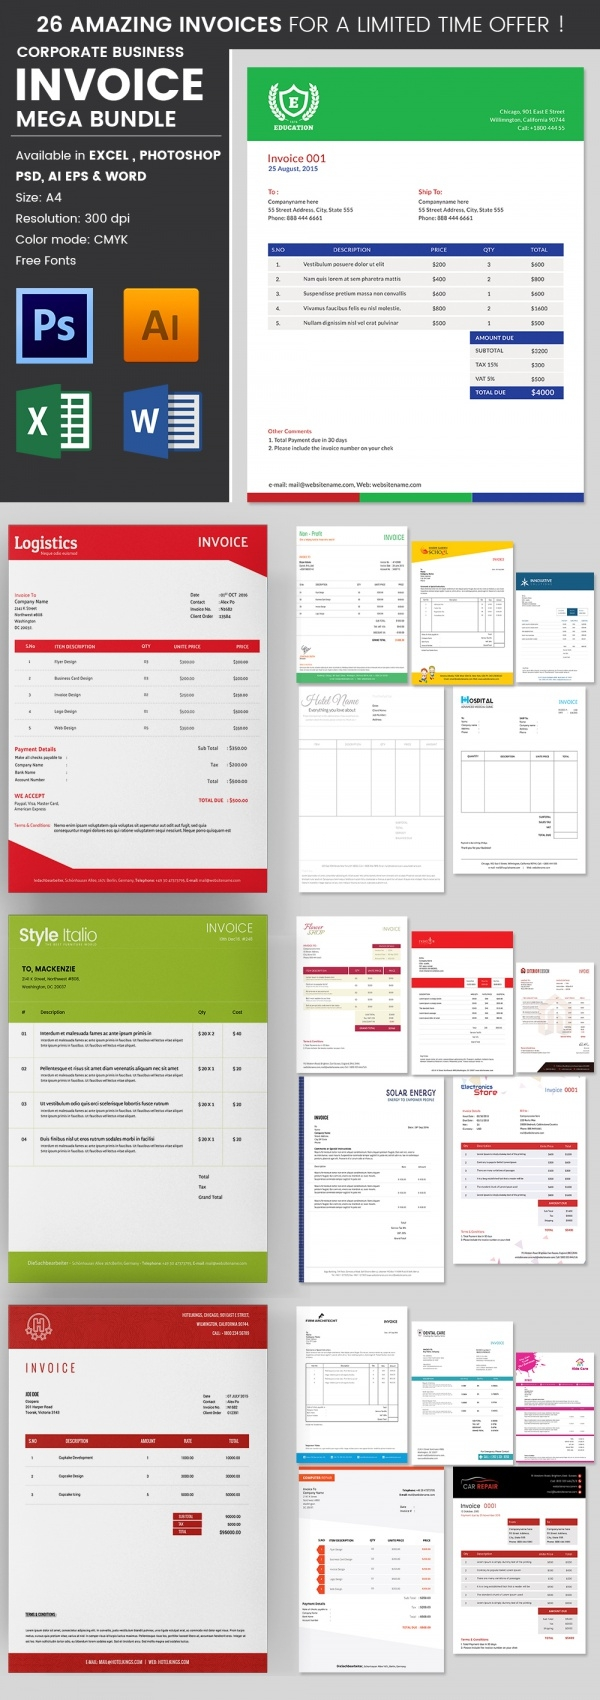 blank invoice template 20 download free documents in word corporate invoice template